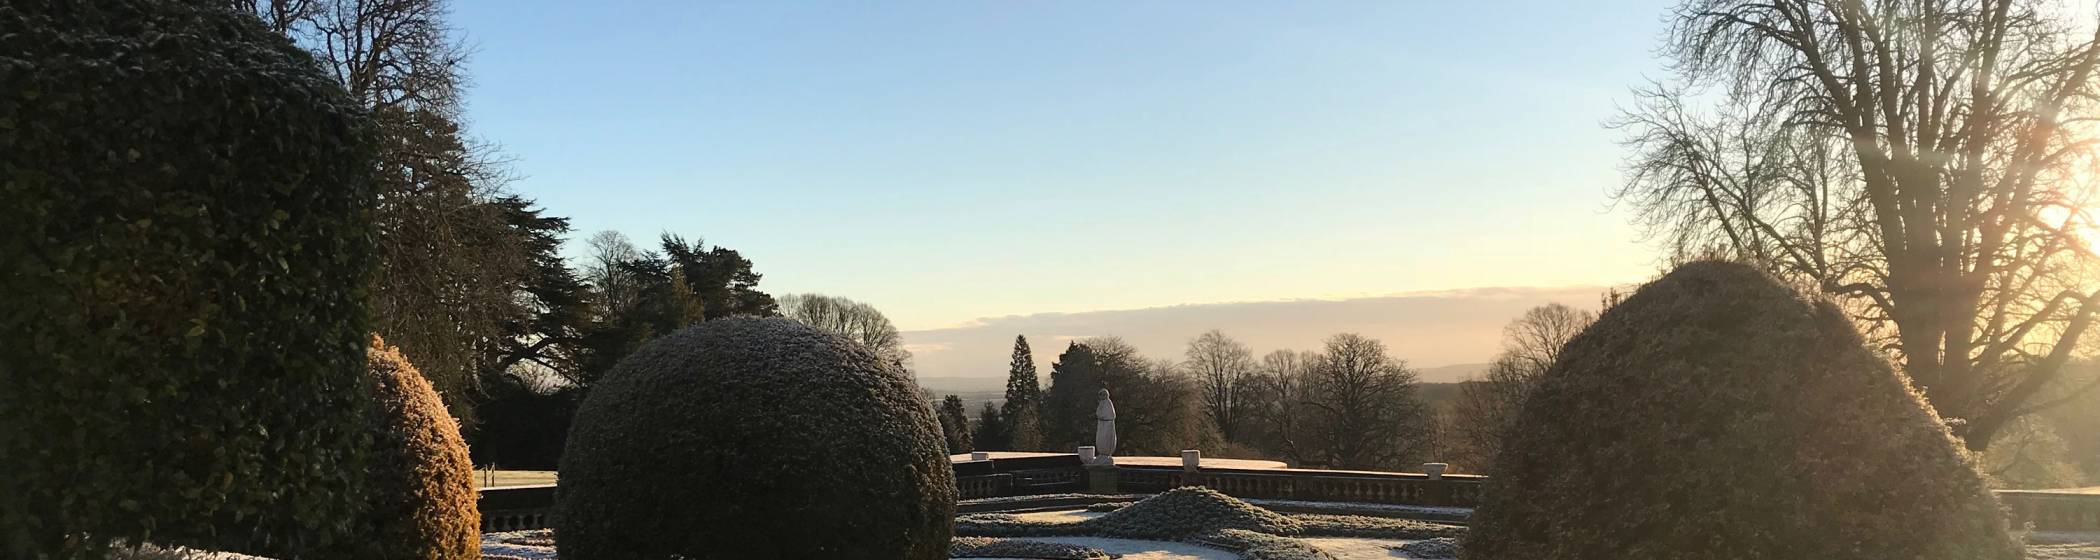 Parterre on a frosty morning